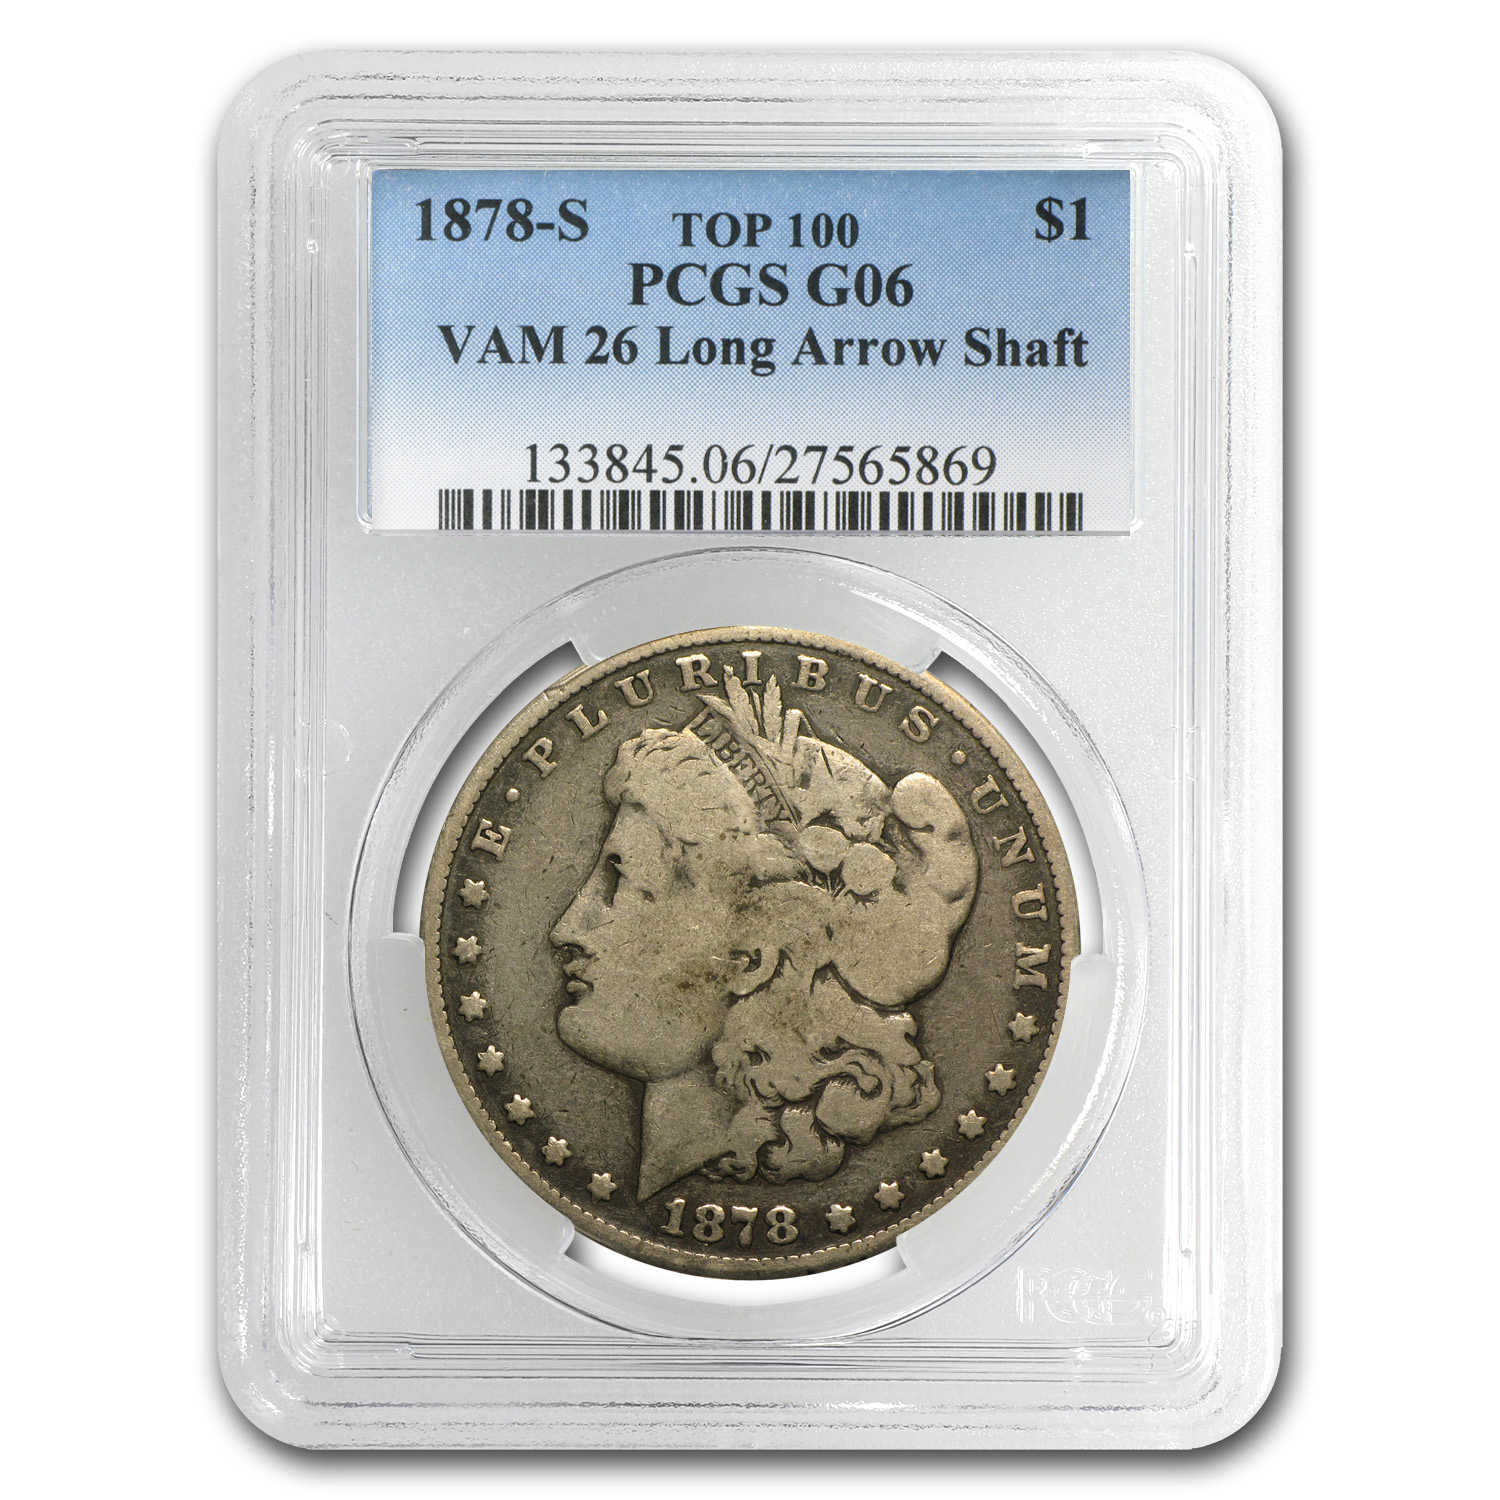 1878-S Morgan Dollar G-6 PCGS (VAM-26, Long Nock Rev, Top-100)